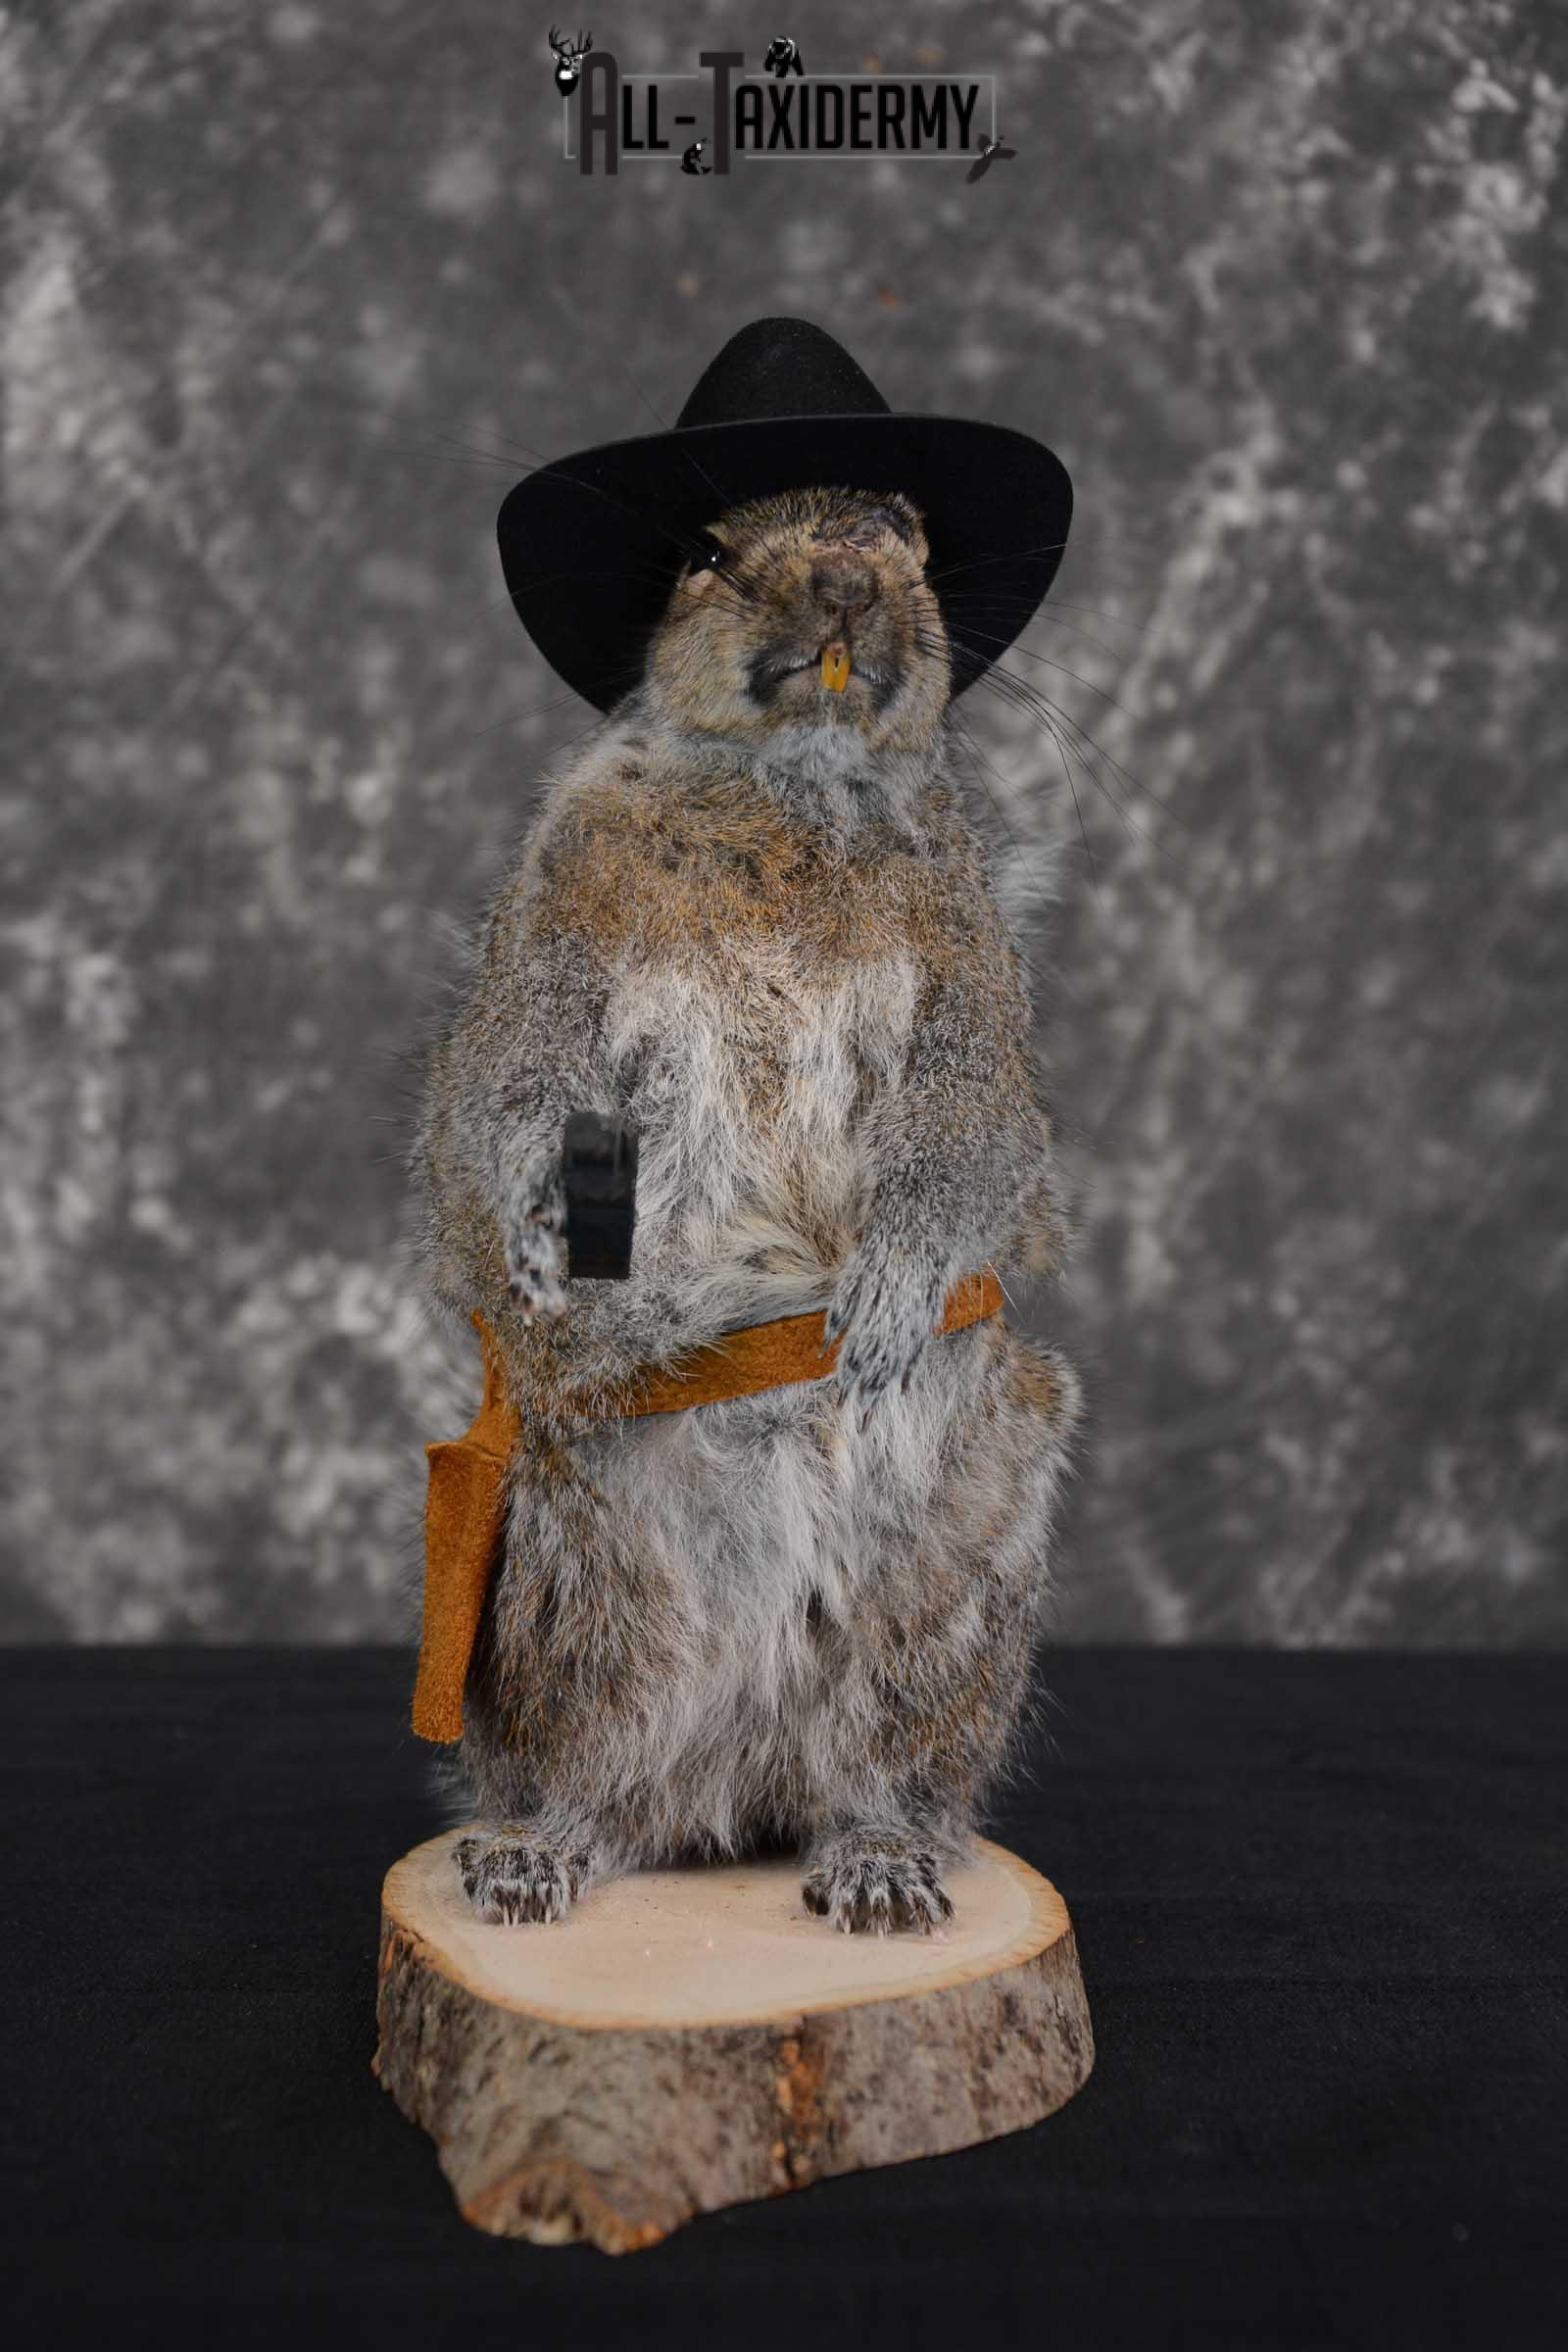 Gray Squirrel taxidermy cowboy novelty for sale SKU 1634